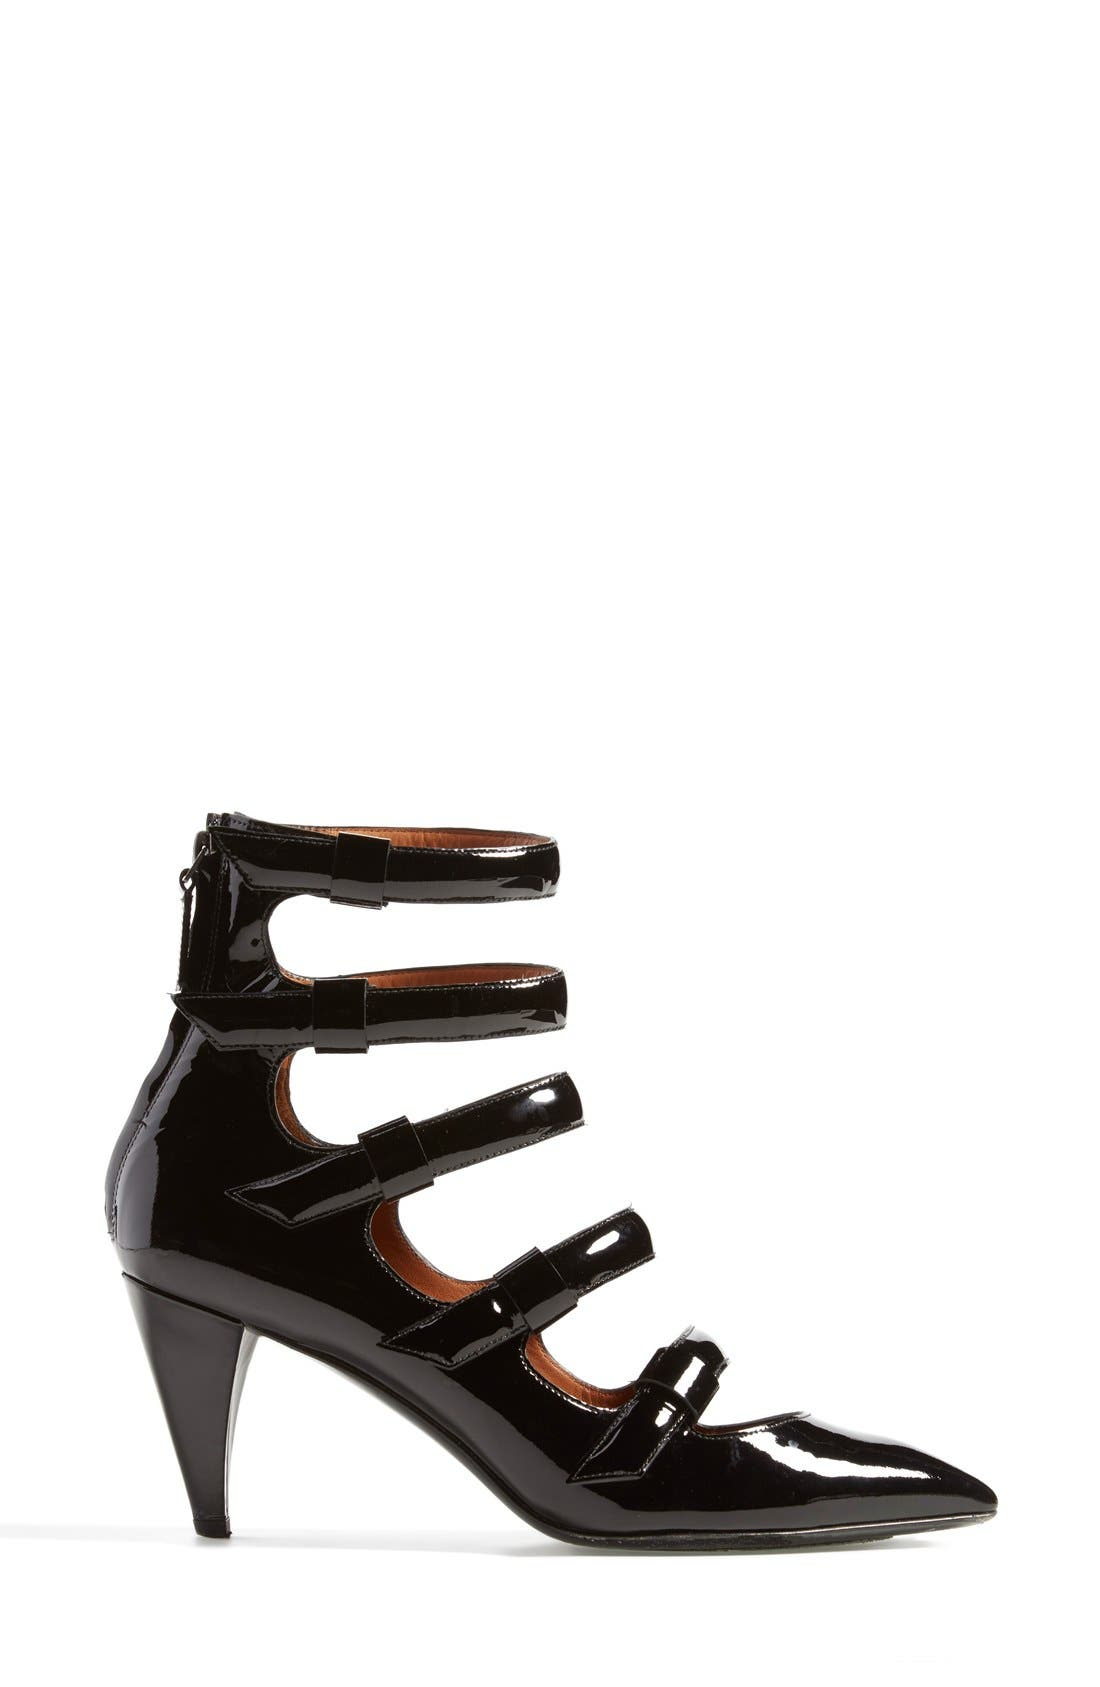 MARC JACOBS, MARC BY MARC JACOBS 'Runway' Pump, Alternate thumbnail 4, color, 001